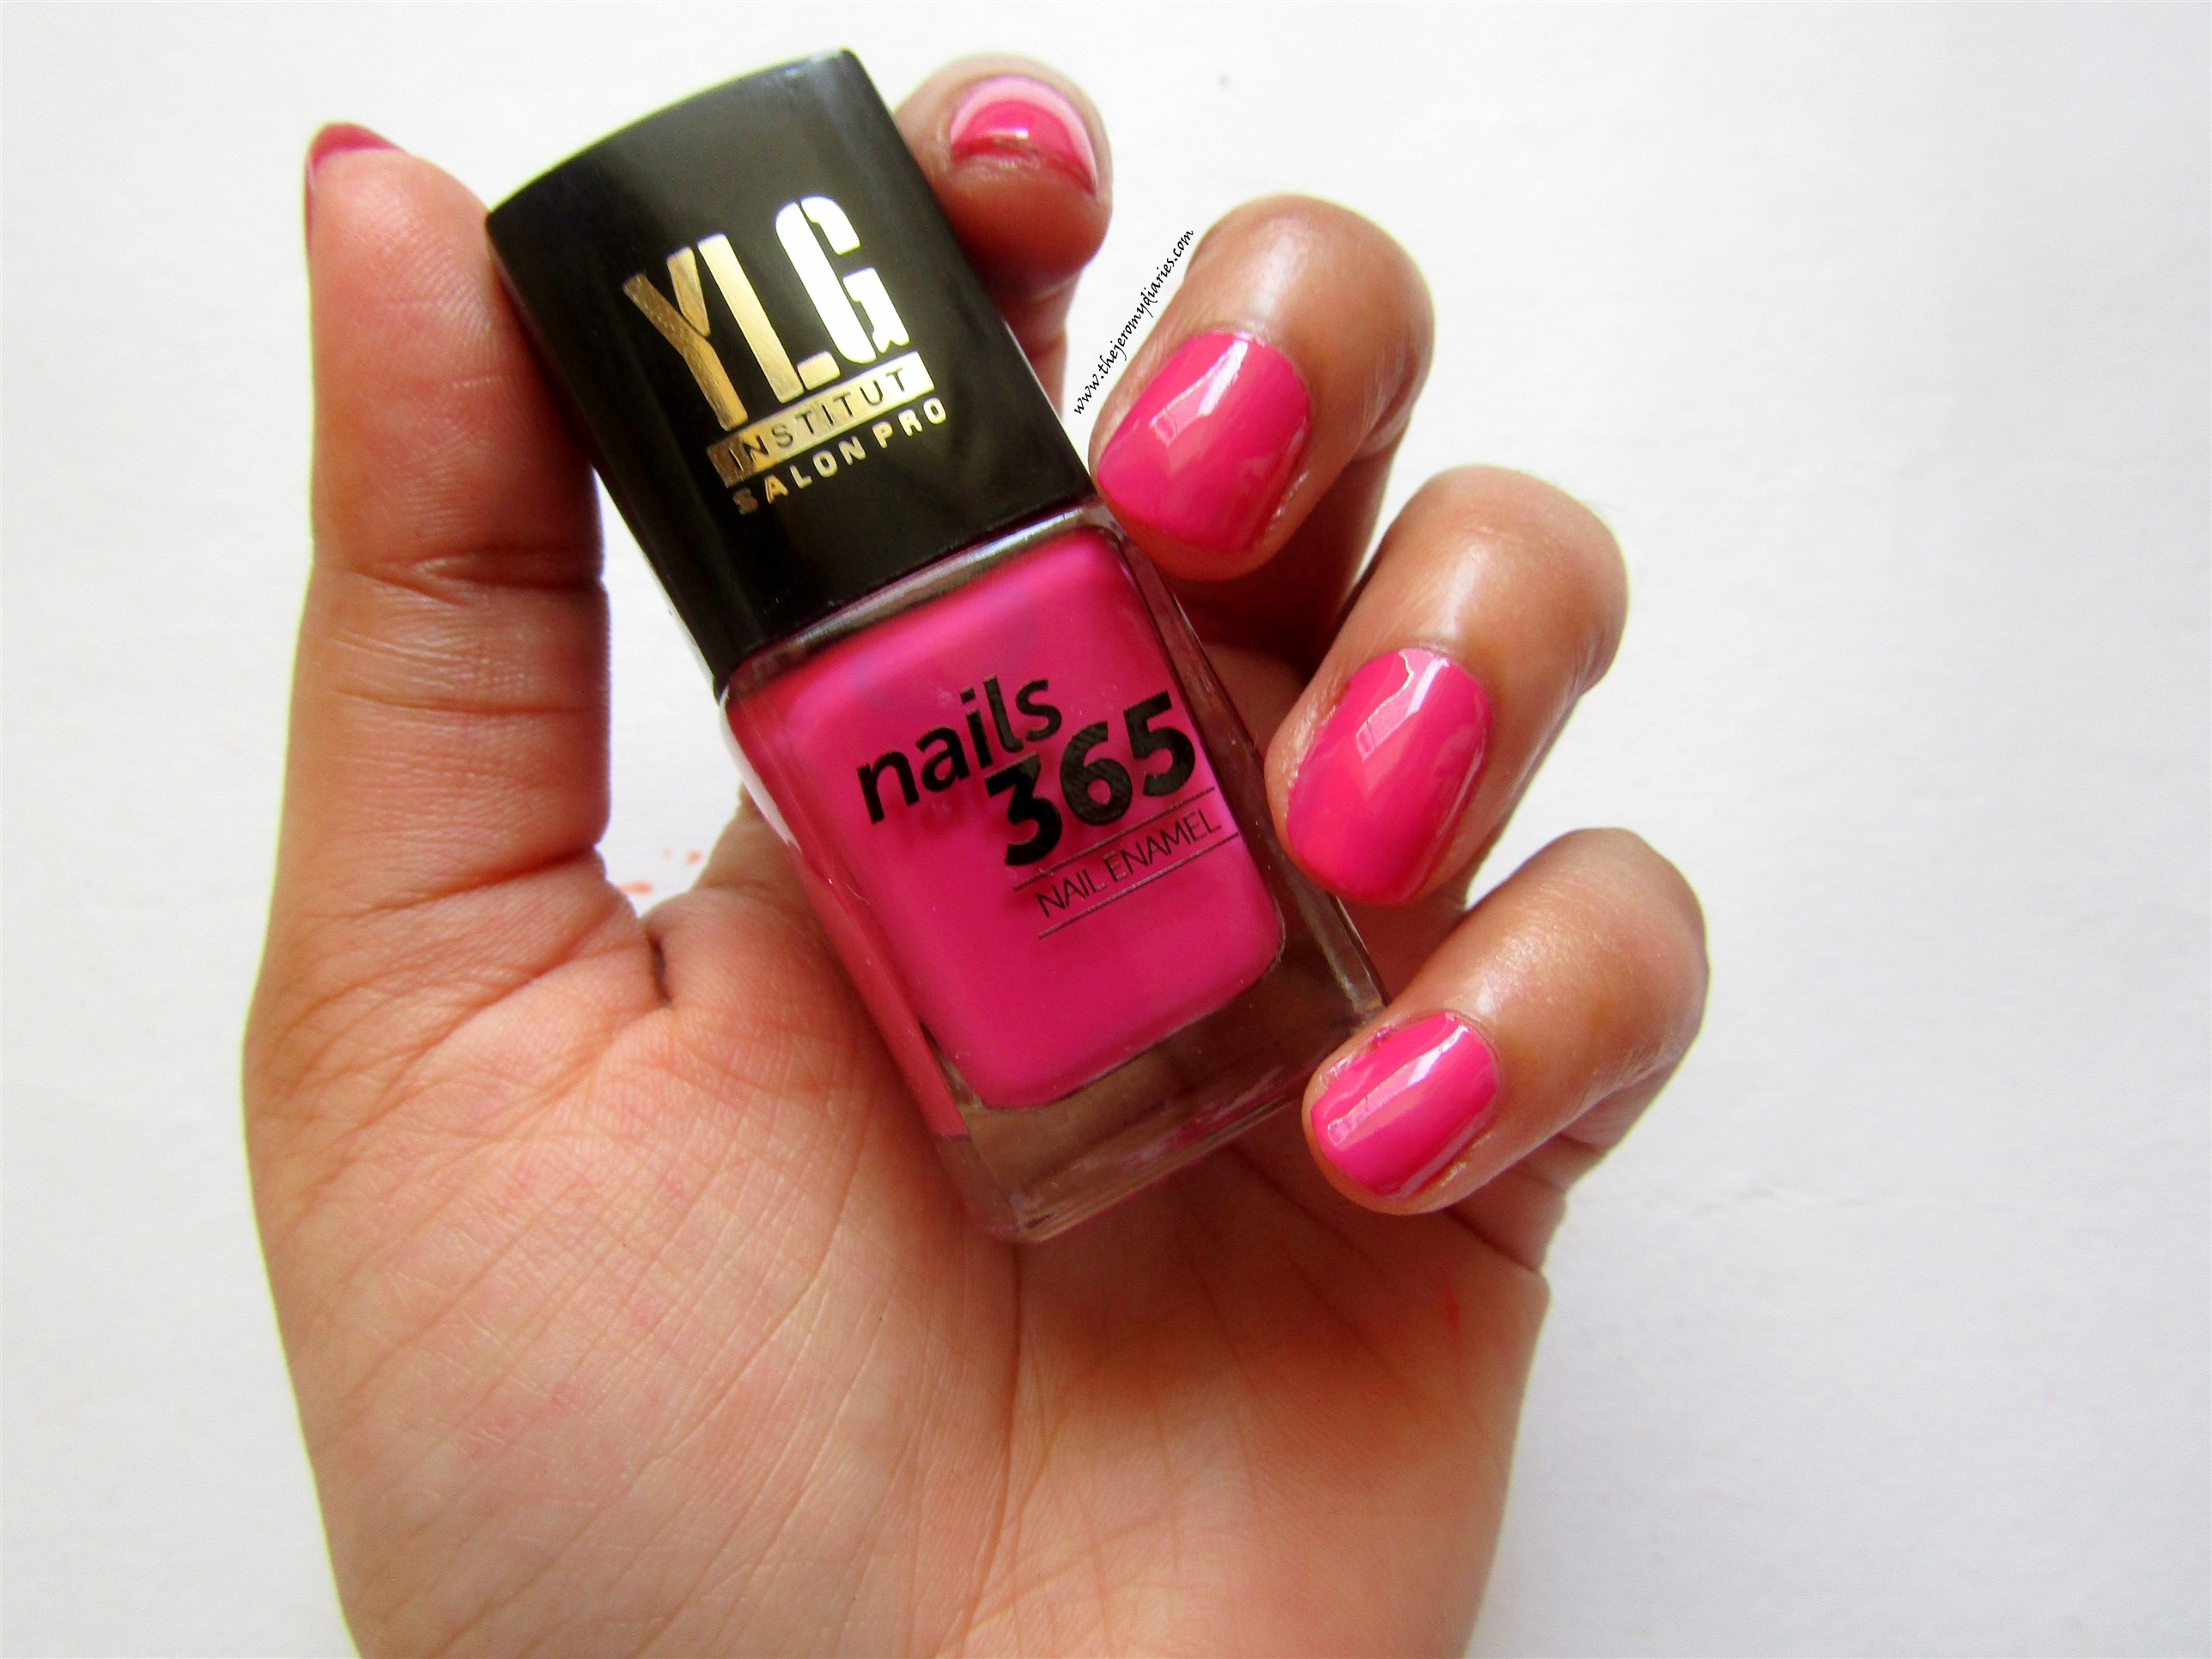 ylg nails 365 pink shade nail paint swatches the jeromy diaries